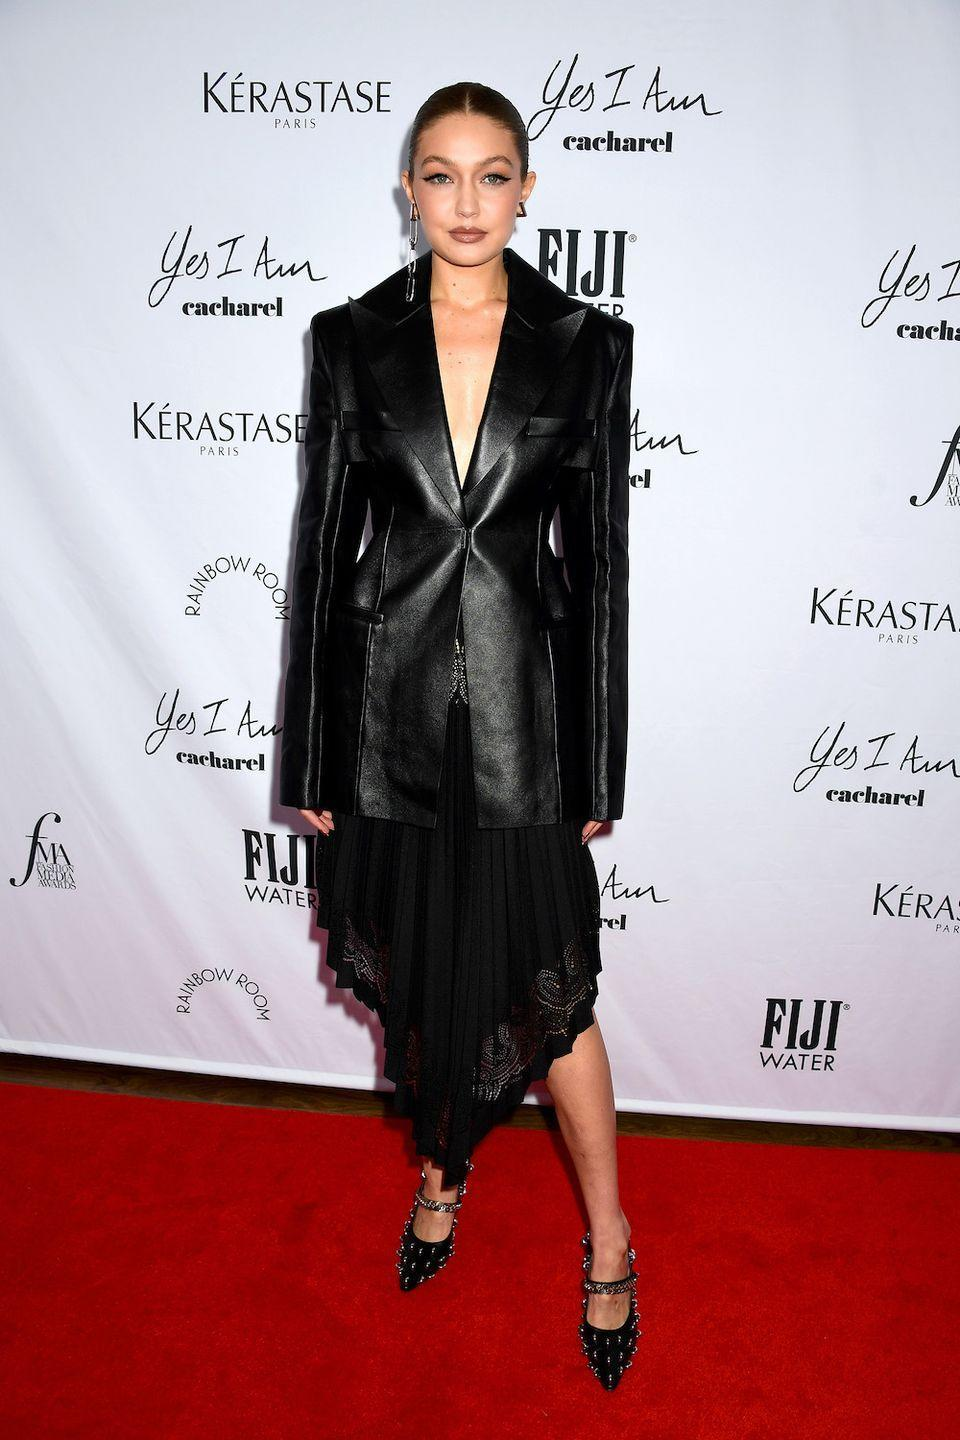 <p>The mother-of-one wore Givenchy to the red carpet event.</p>